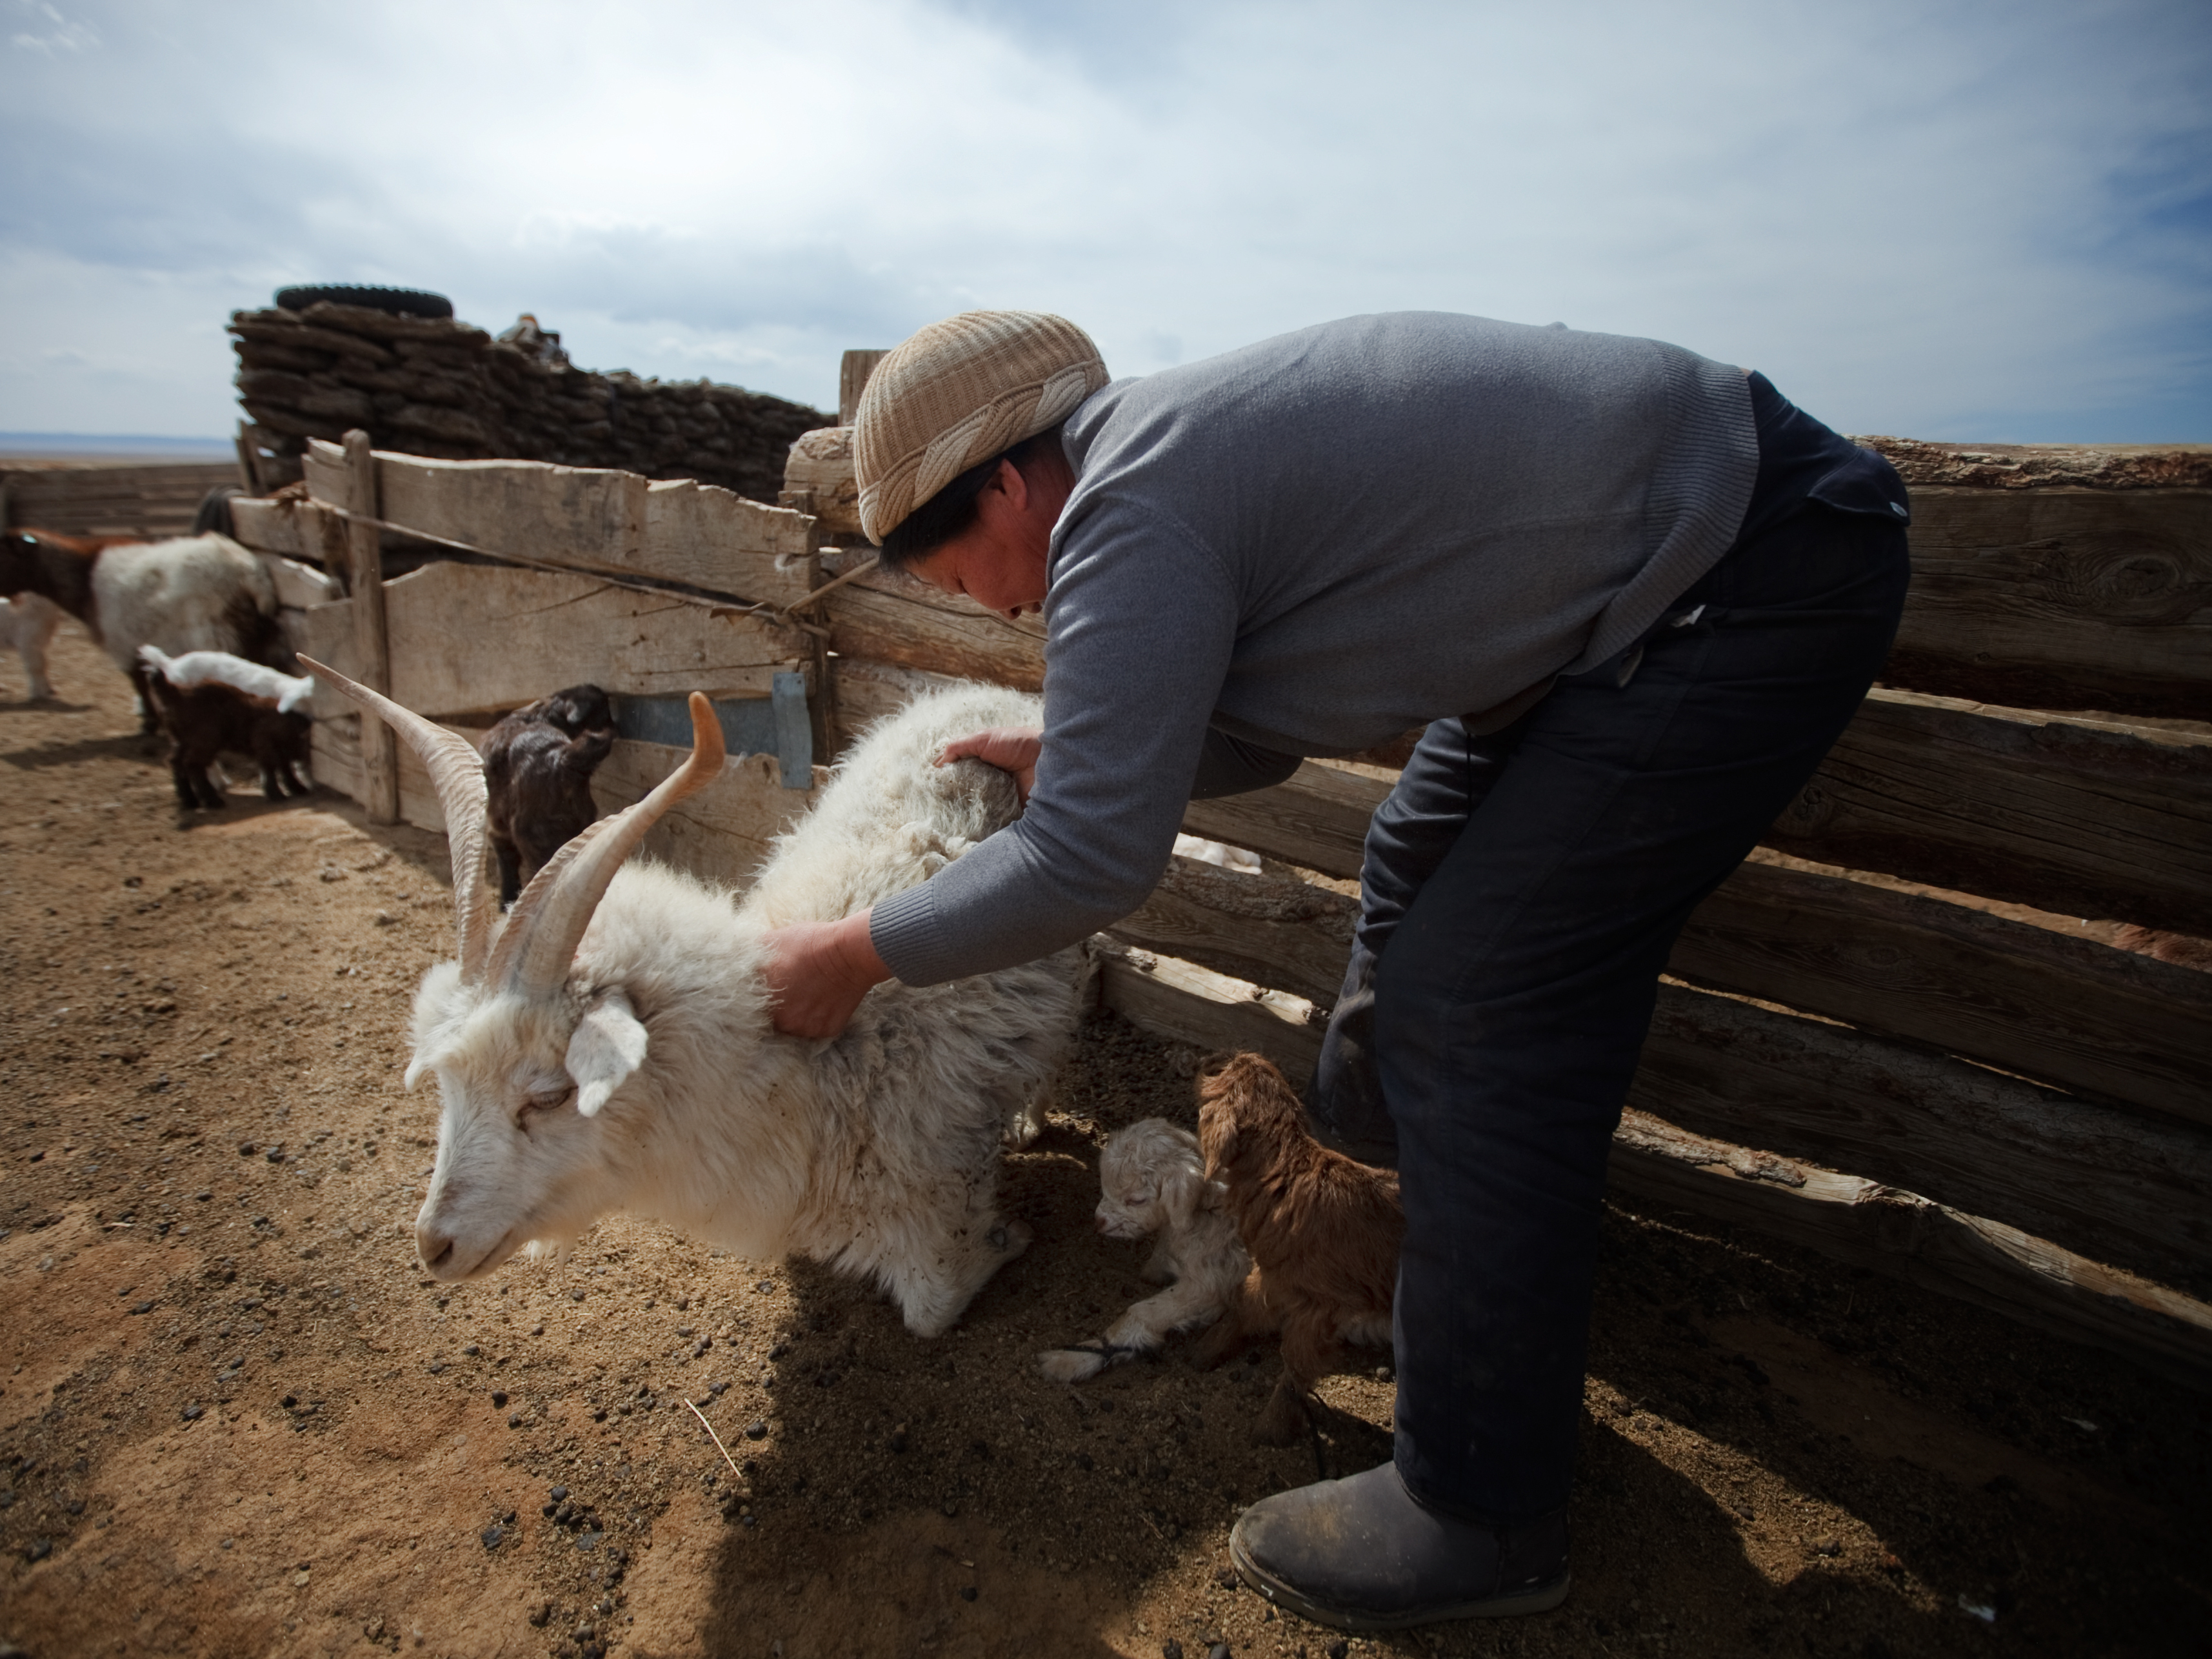 Thirty years ago, when the grass grew tall, cashmere goats made up 19 percent of all livestock in Mongolia. Since then, their numbers have skyrocketed to make up 60 percent today. John W. Poole/NPR.